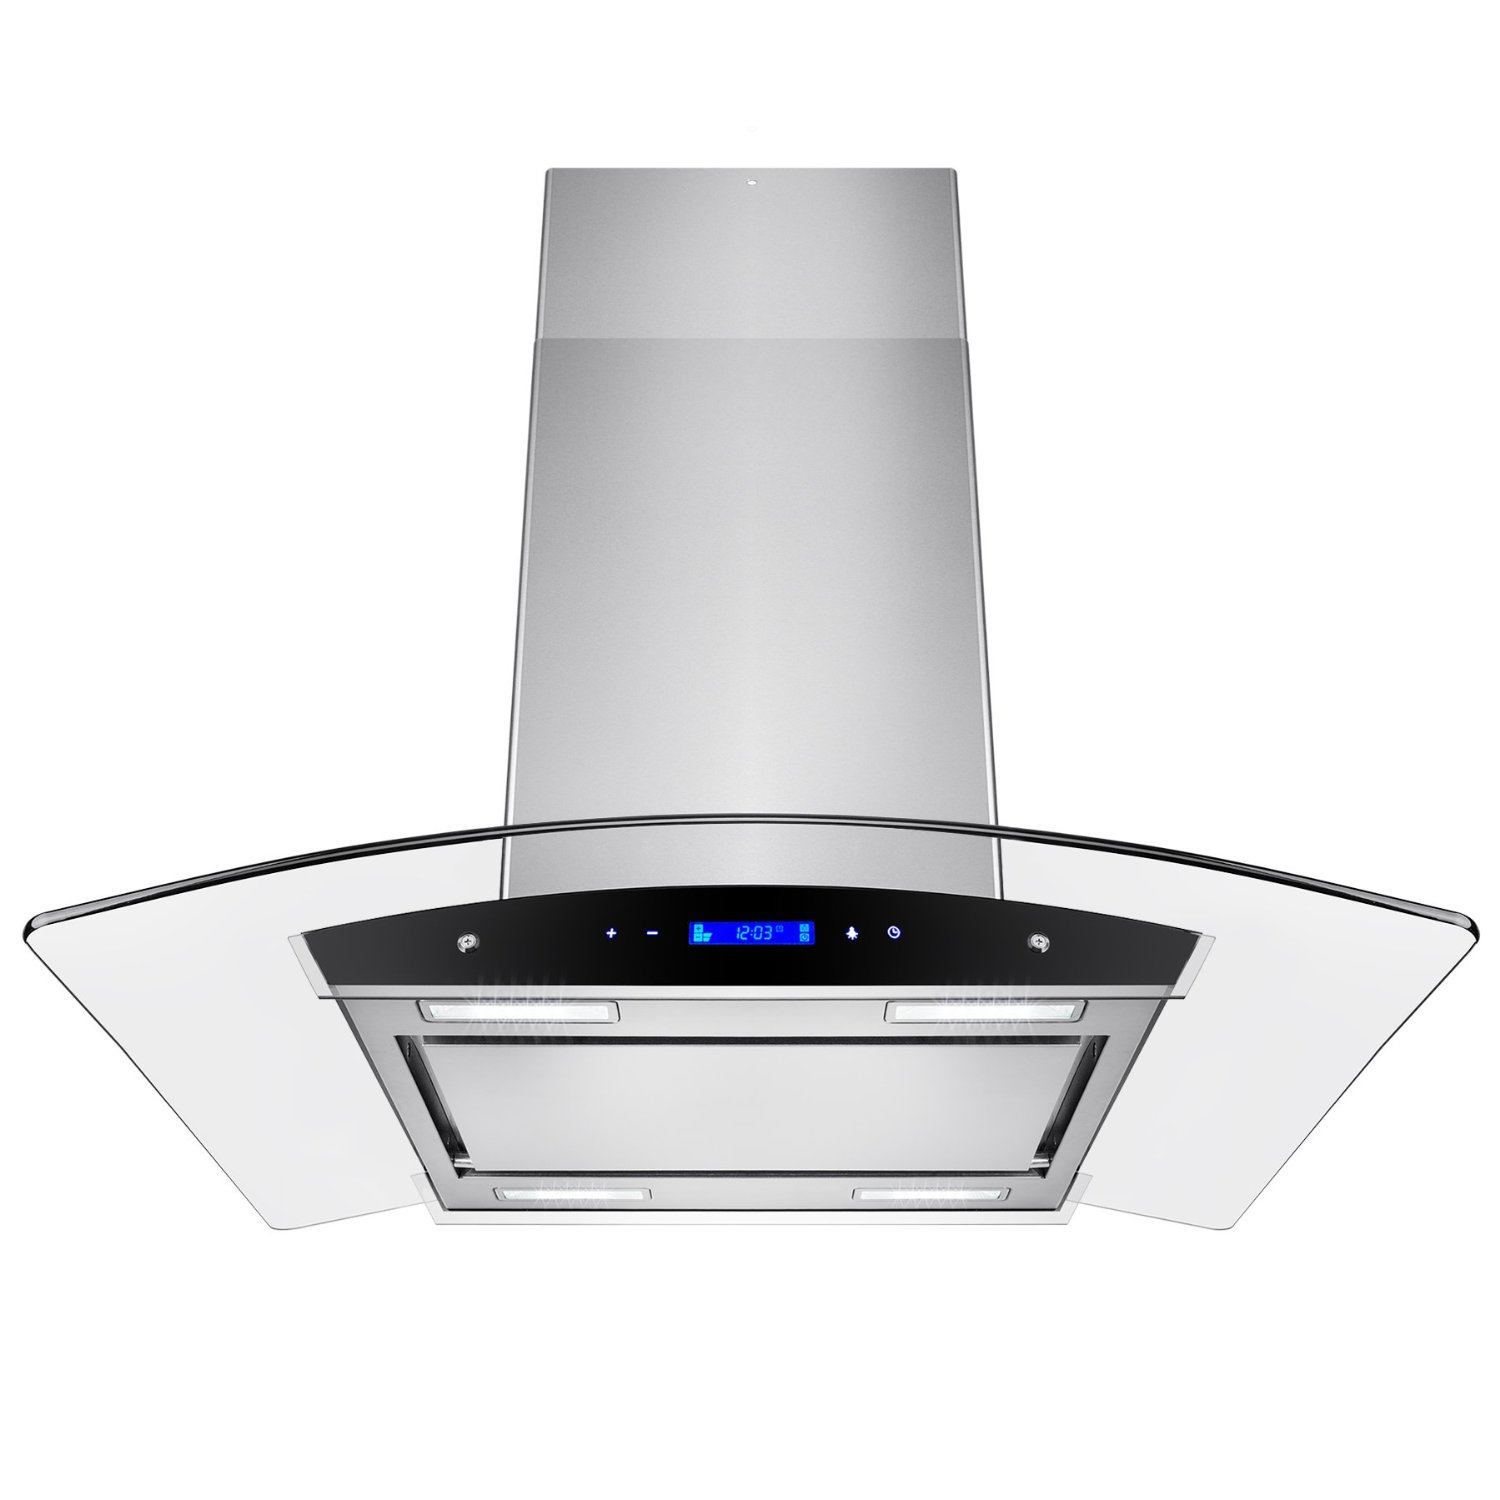 Kitchen Hood How To Fix Noisy Range Hood In 6 Easy Steps Broan Range Hood